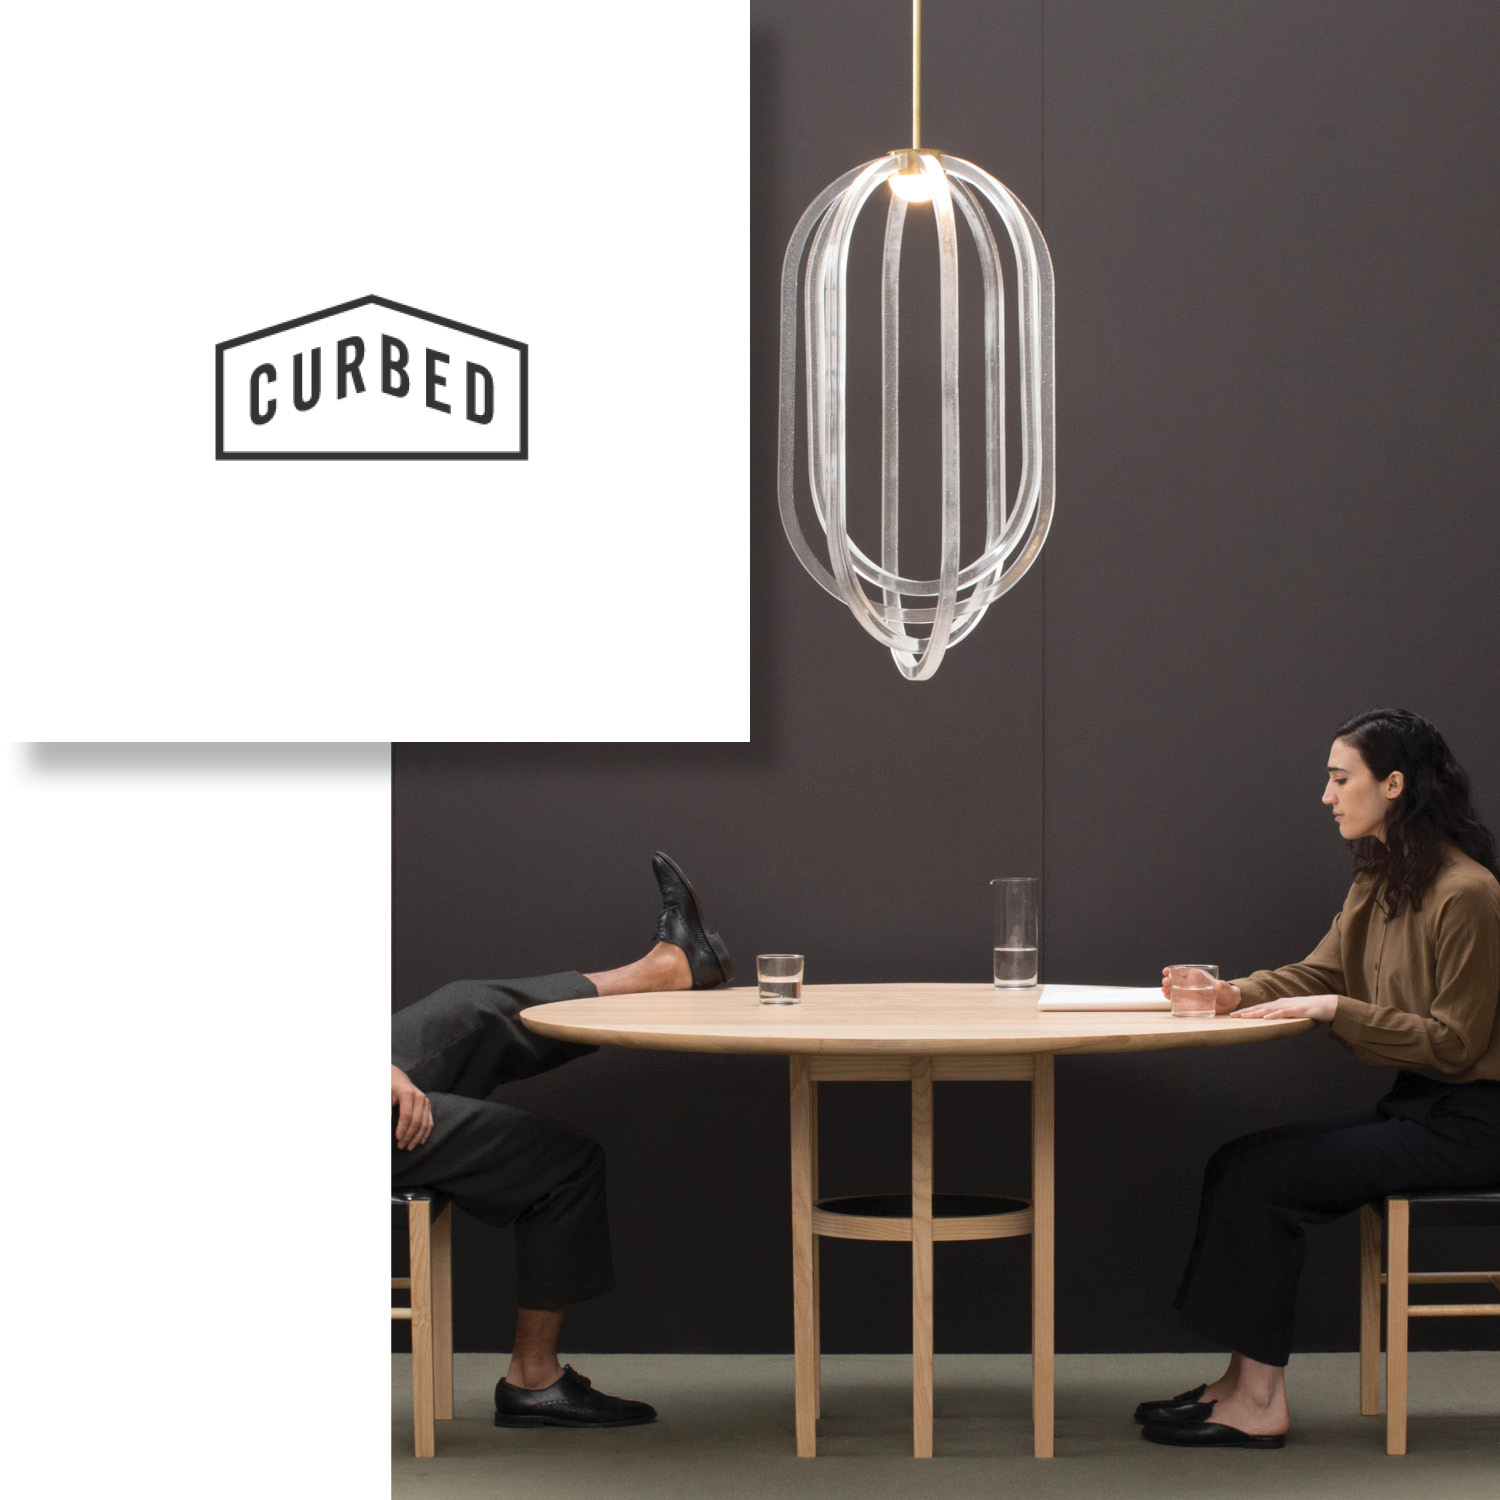 Curbed, May 2018